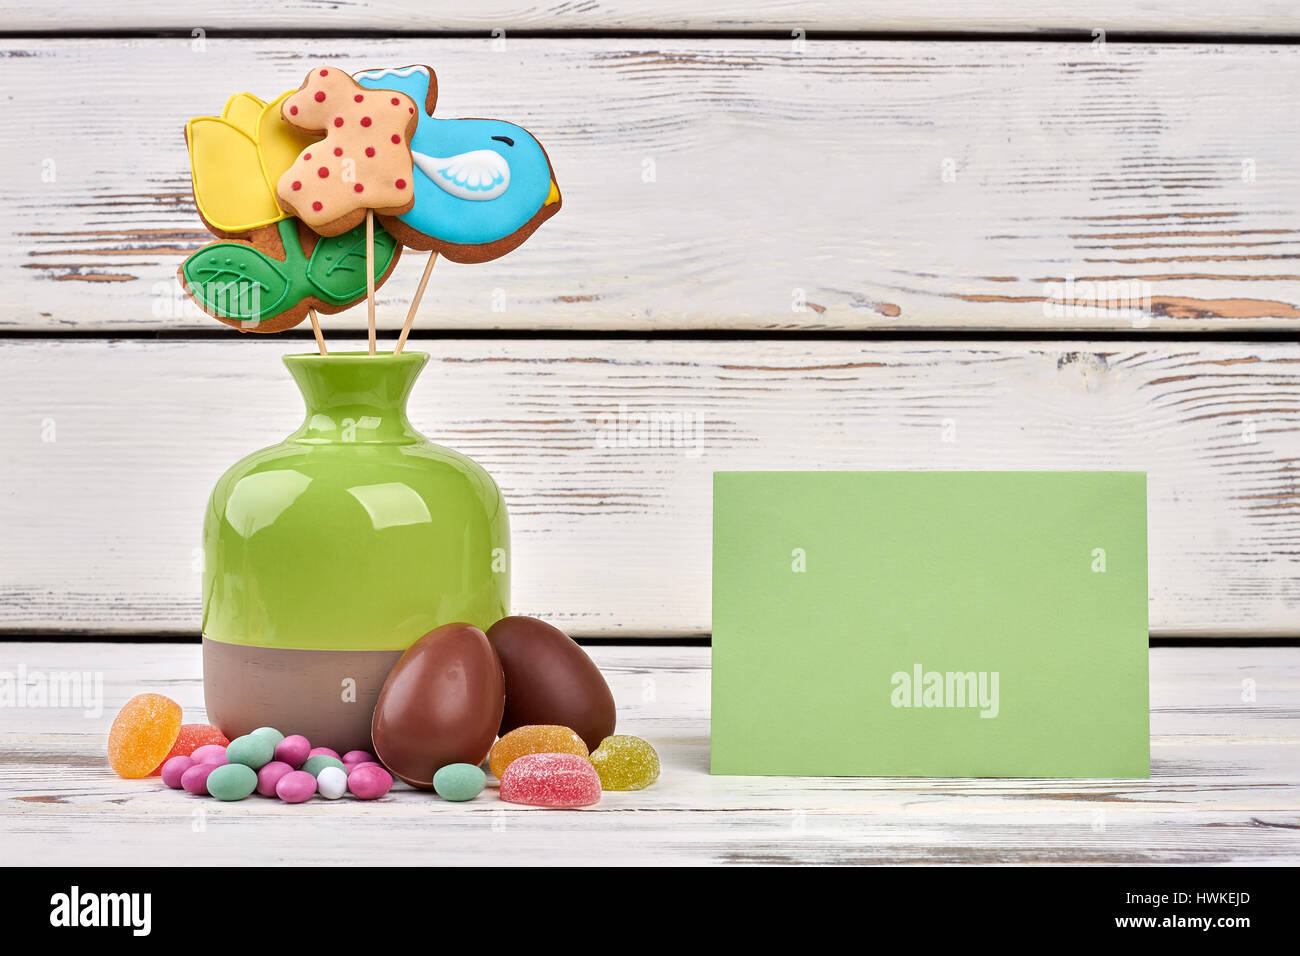 Easter Sweets Blank Greeting Card Stock Photo Royalty Free Image